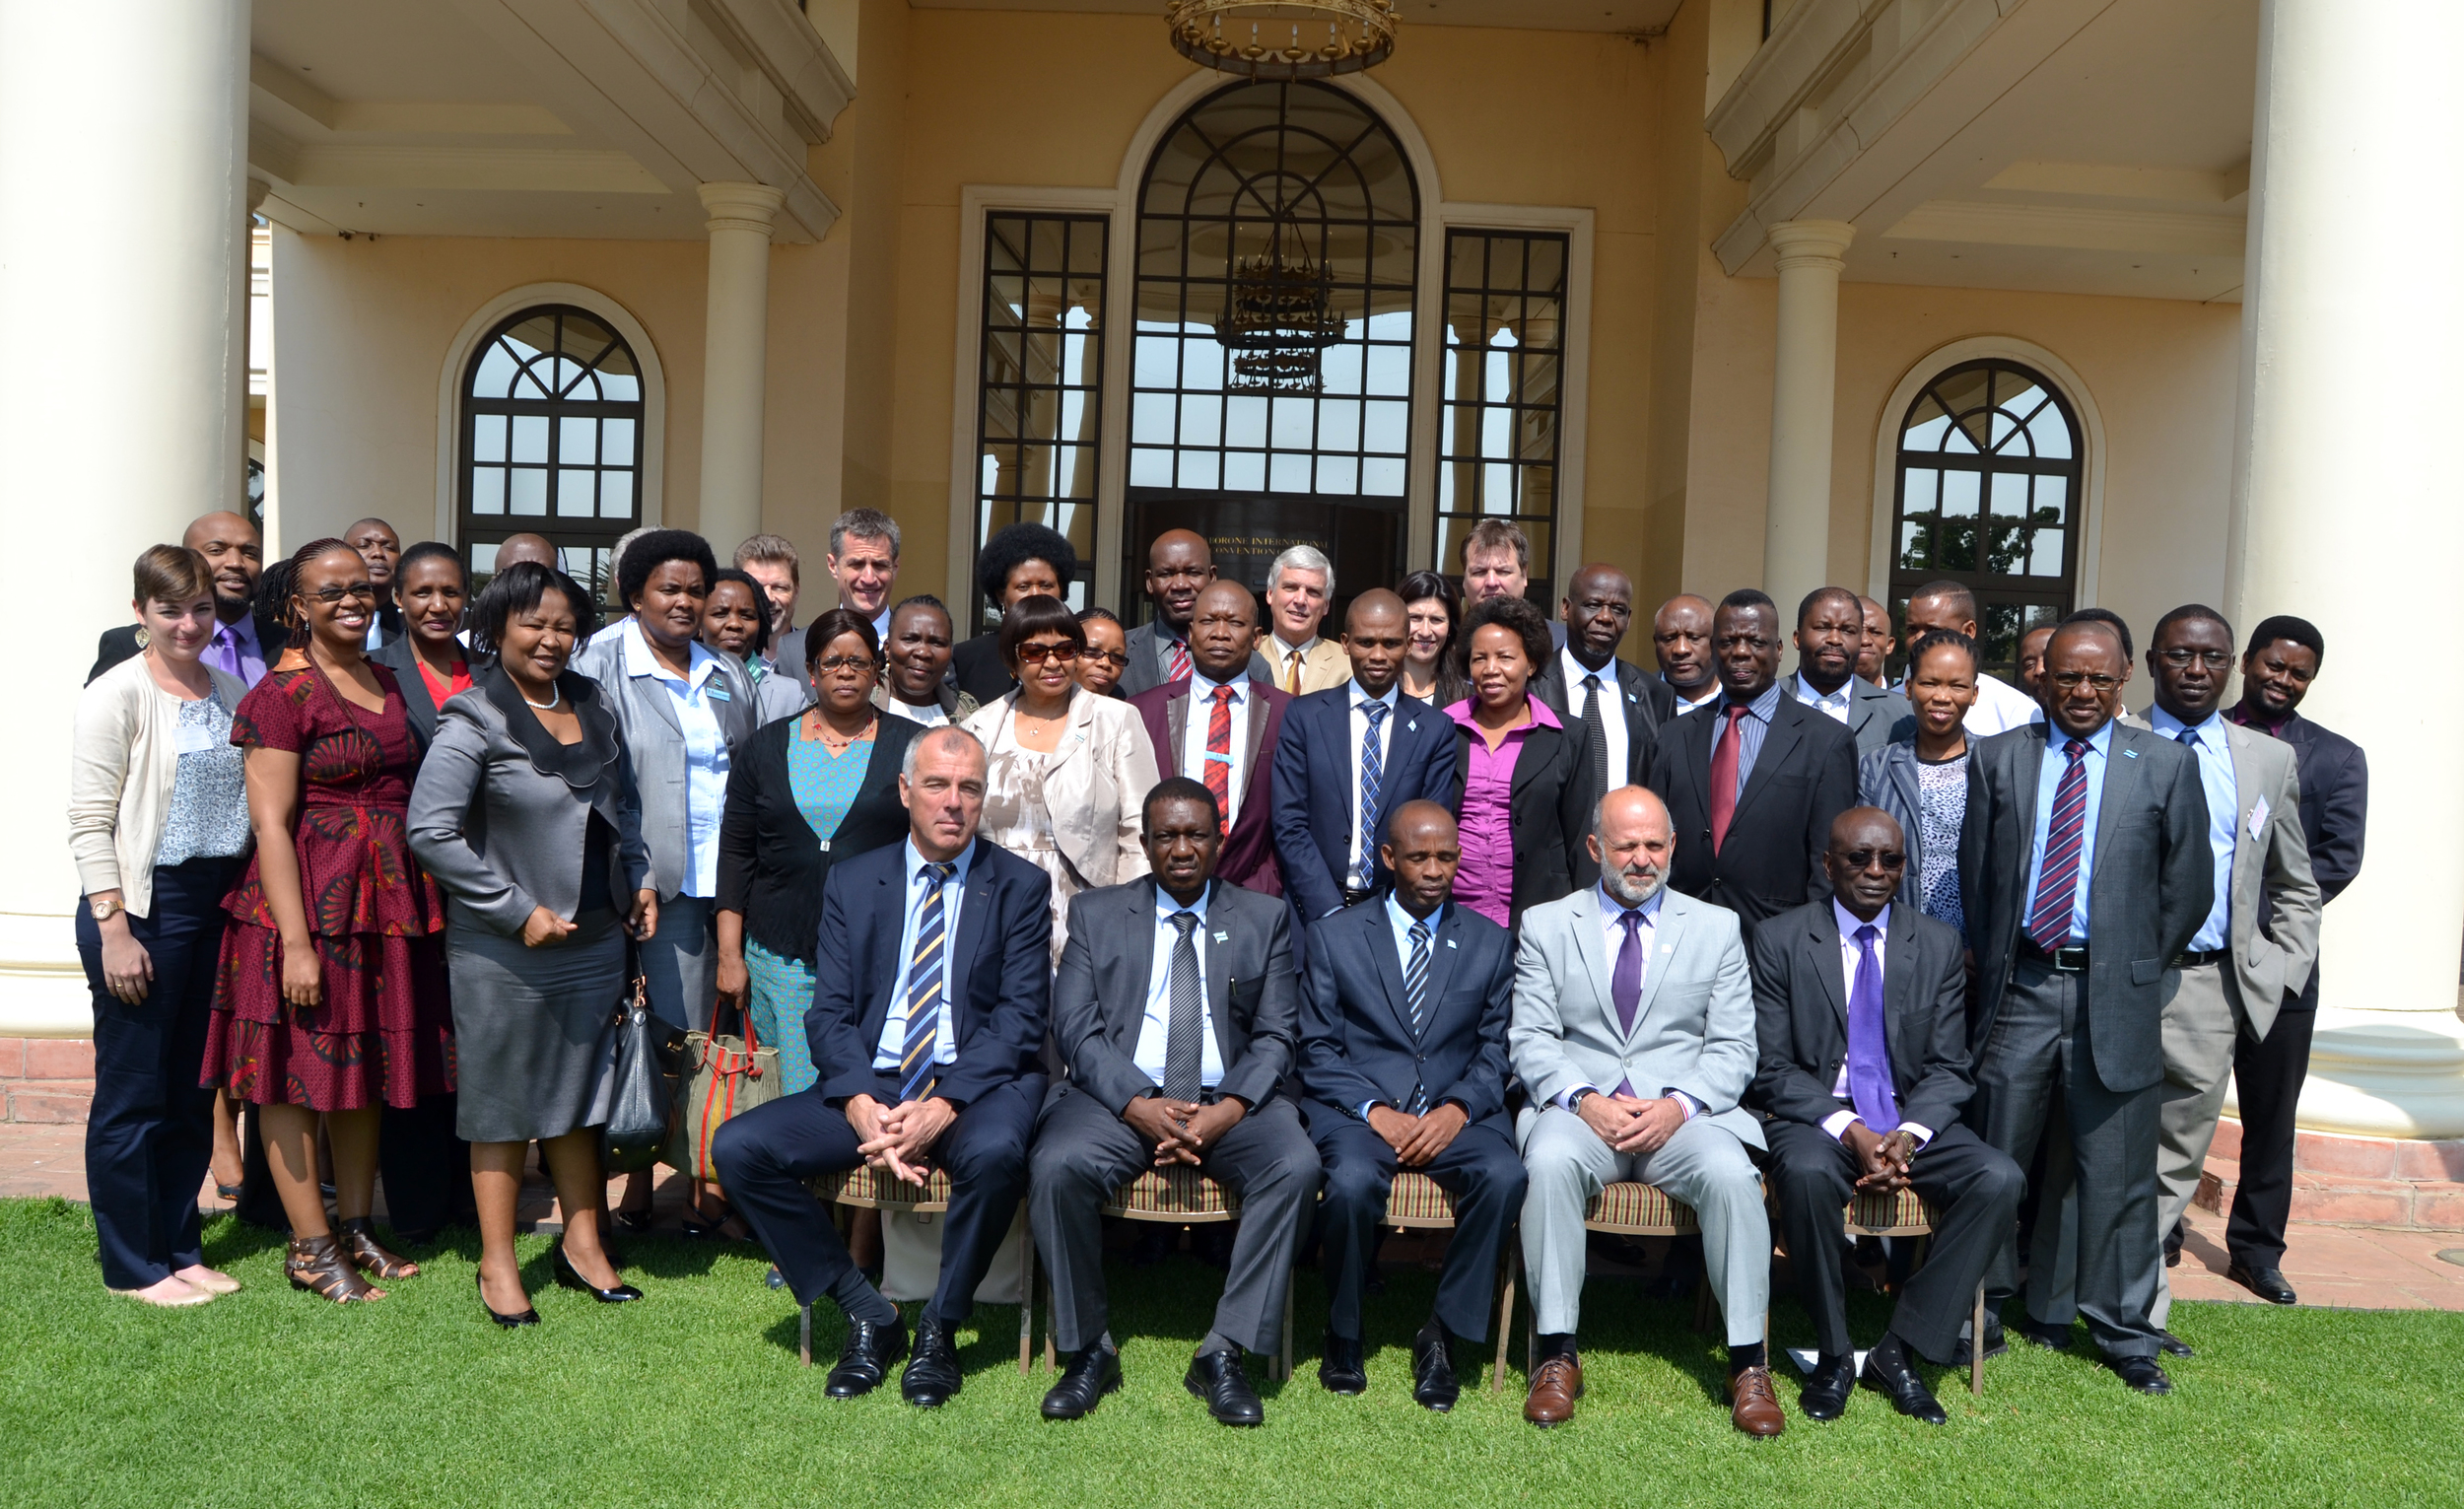 Attendees of the botswana roadshow pose for a portrait during the event held september 17, 2015 at the grand palm hotel in gaborone. blog author kim reuter is in the second row, at the far left. conservation international / photo by tawana babili